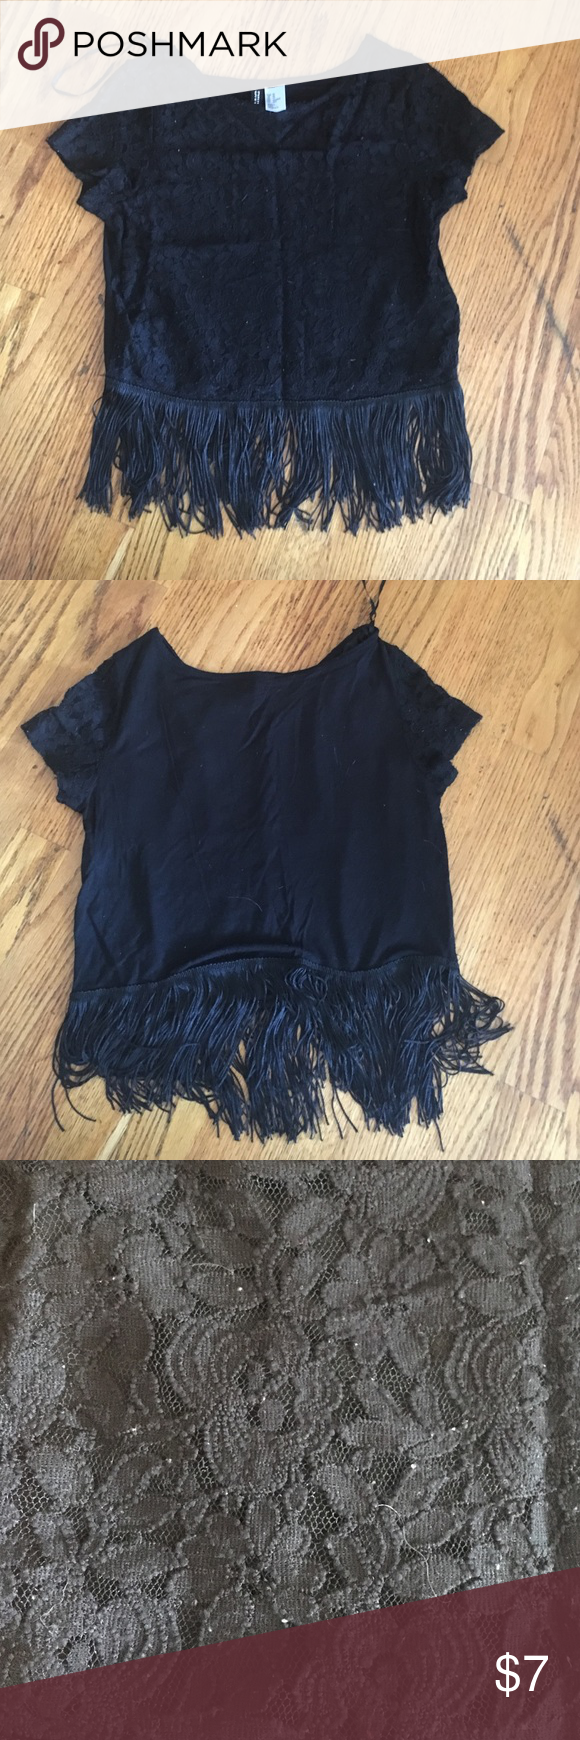 Lace and fringe black crop top Pretty lace crop top with fringe detail at the bottom! H&M Tops Crop Tops